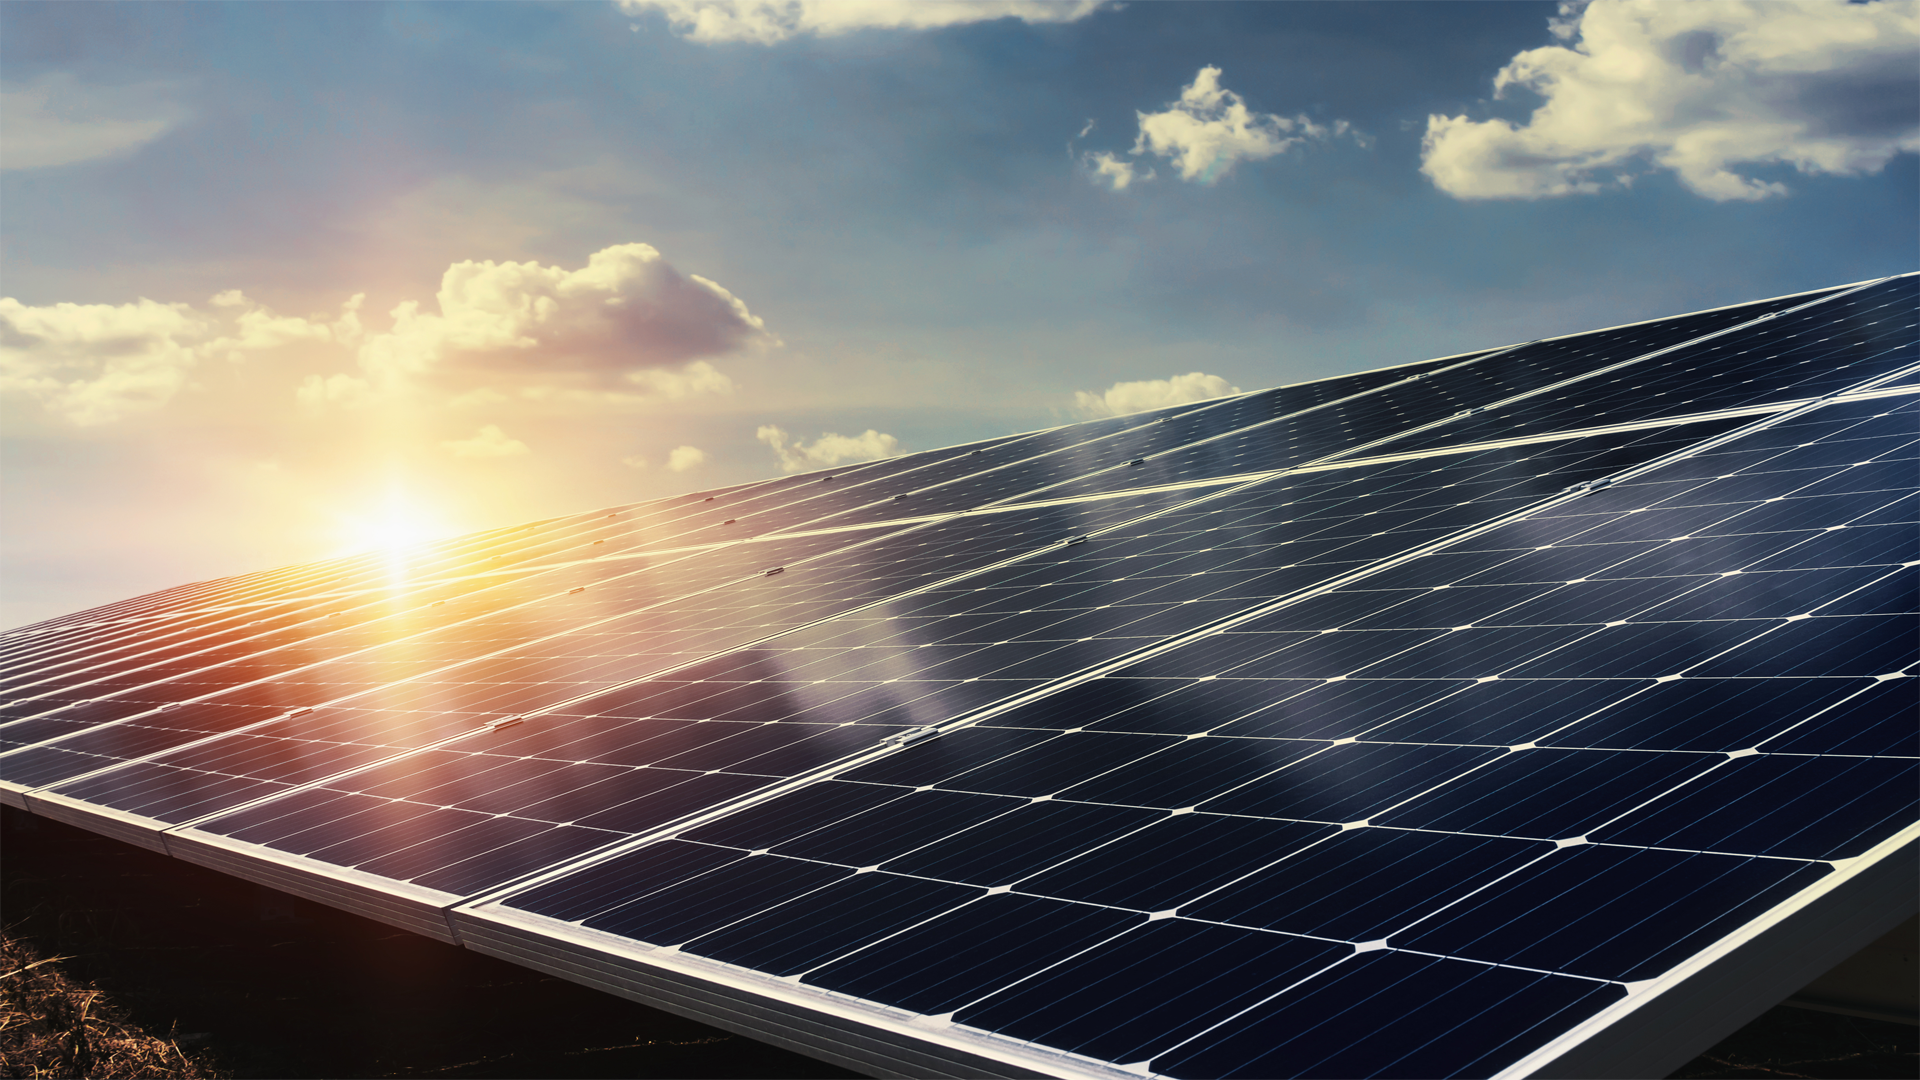 RG Resource Technologies' Solar Panel Solutions Allows for Greater Energy Efficiency